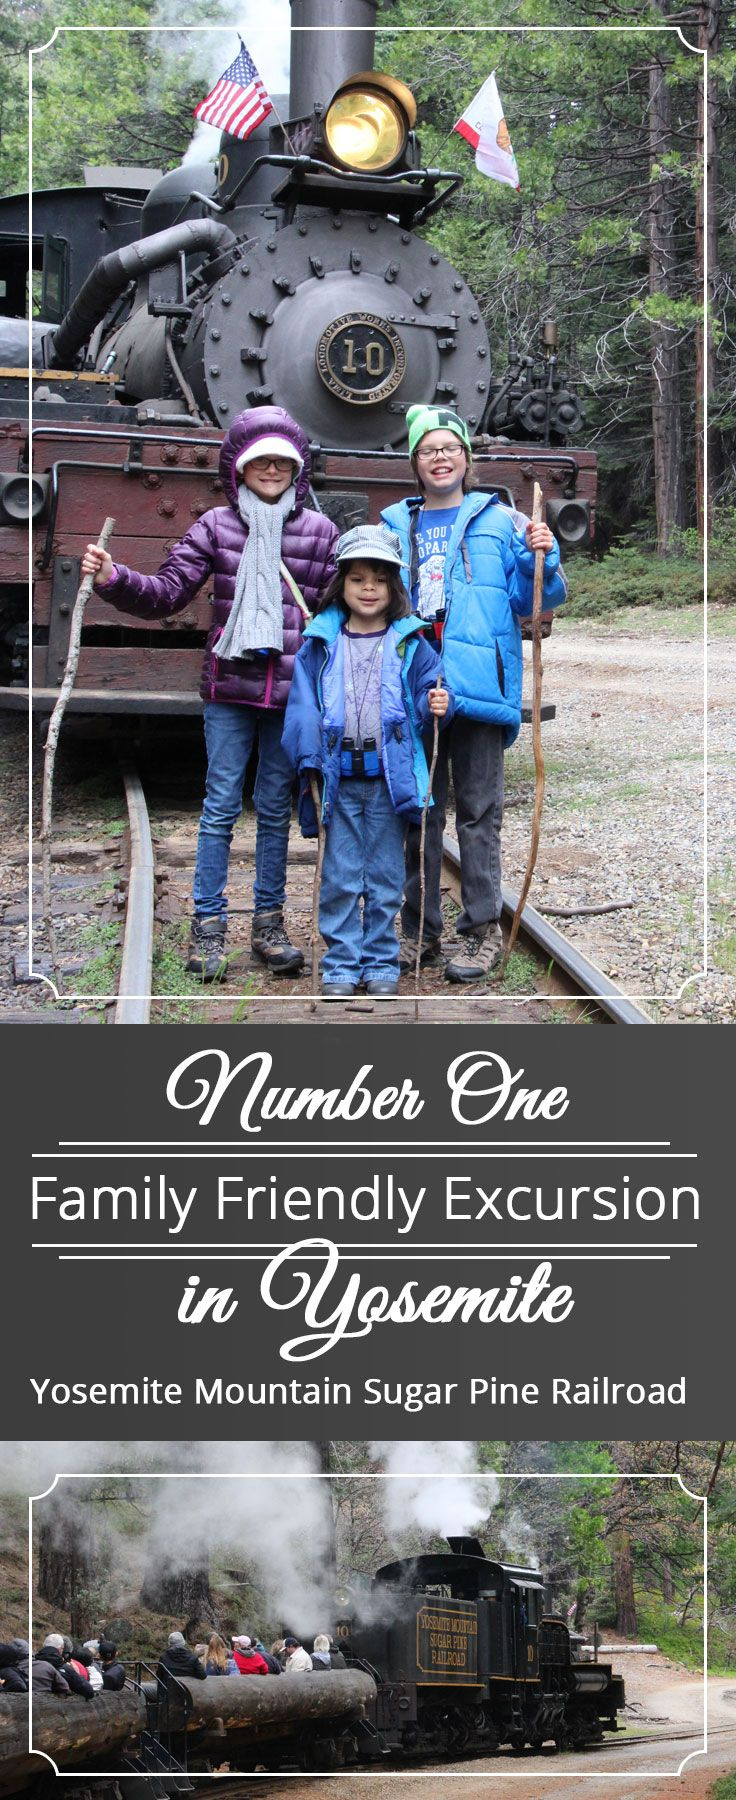 ad - Yosemite Mountain sugar pine railroad  Family friendly excursion for young families in Yosemite National Forest.  Authentic Steam Engine tour of the world famous national park.  Add to your family travel plans!